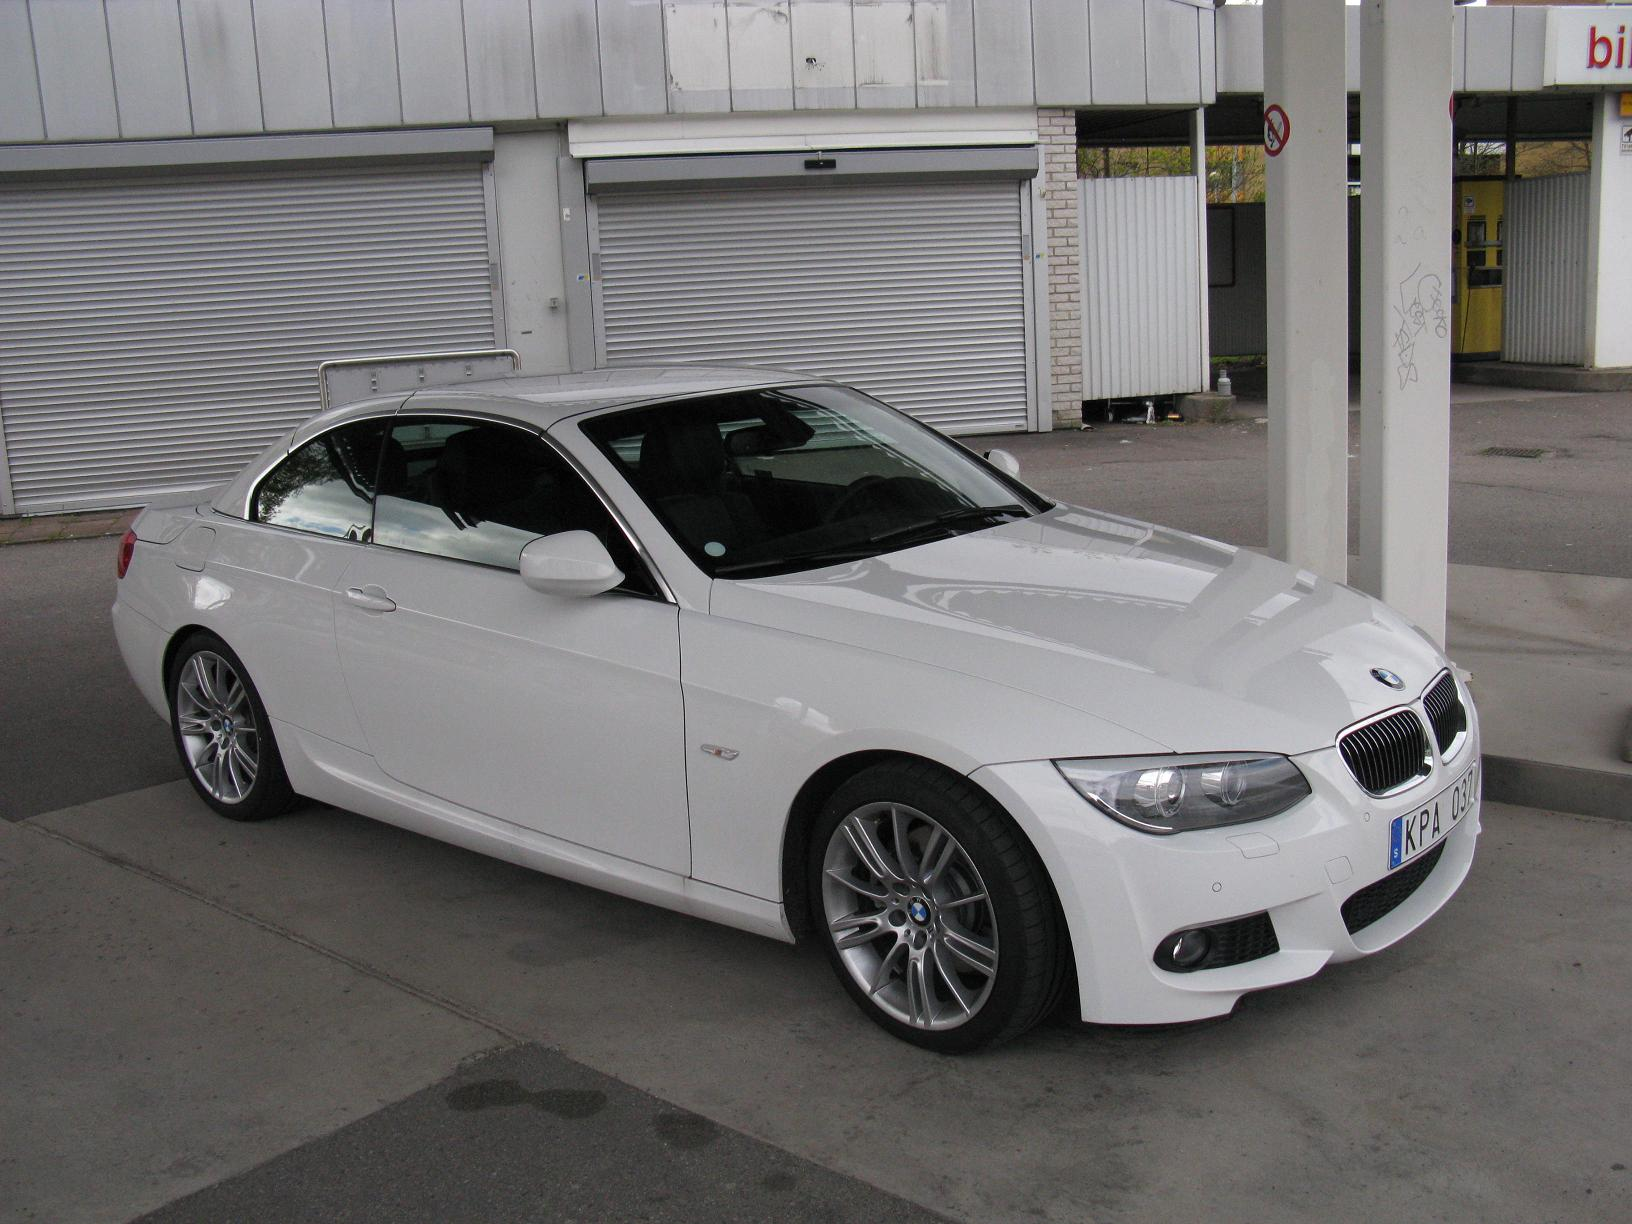 File Bmw 325i Cabriolet M Sport 4602076755 Jpg Wikimedia Commons